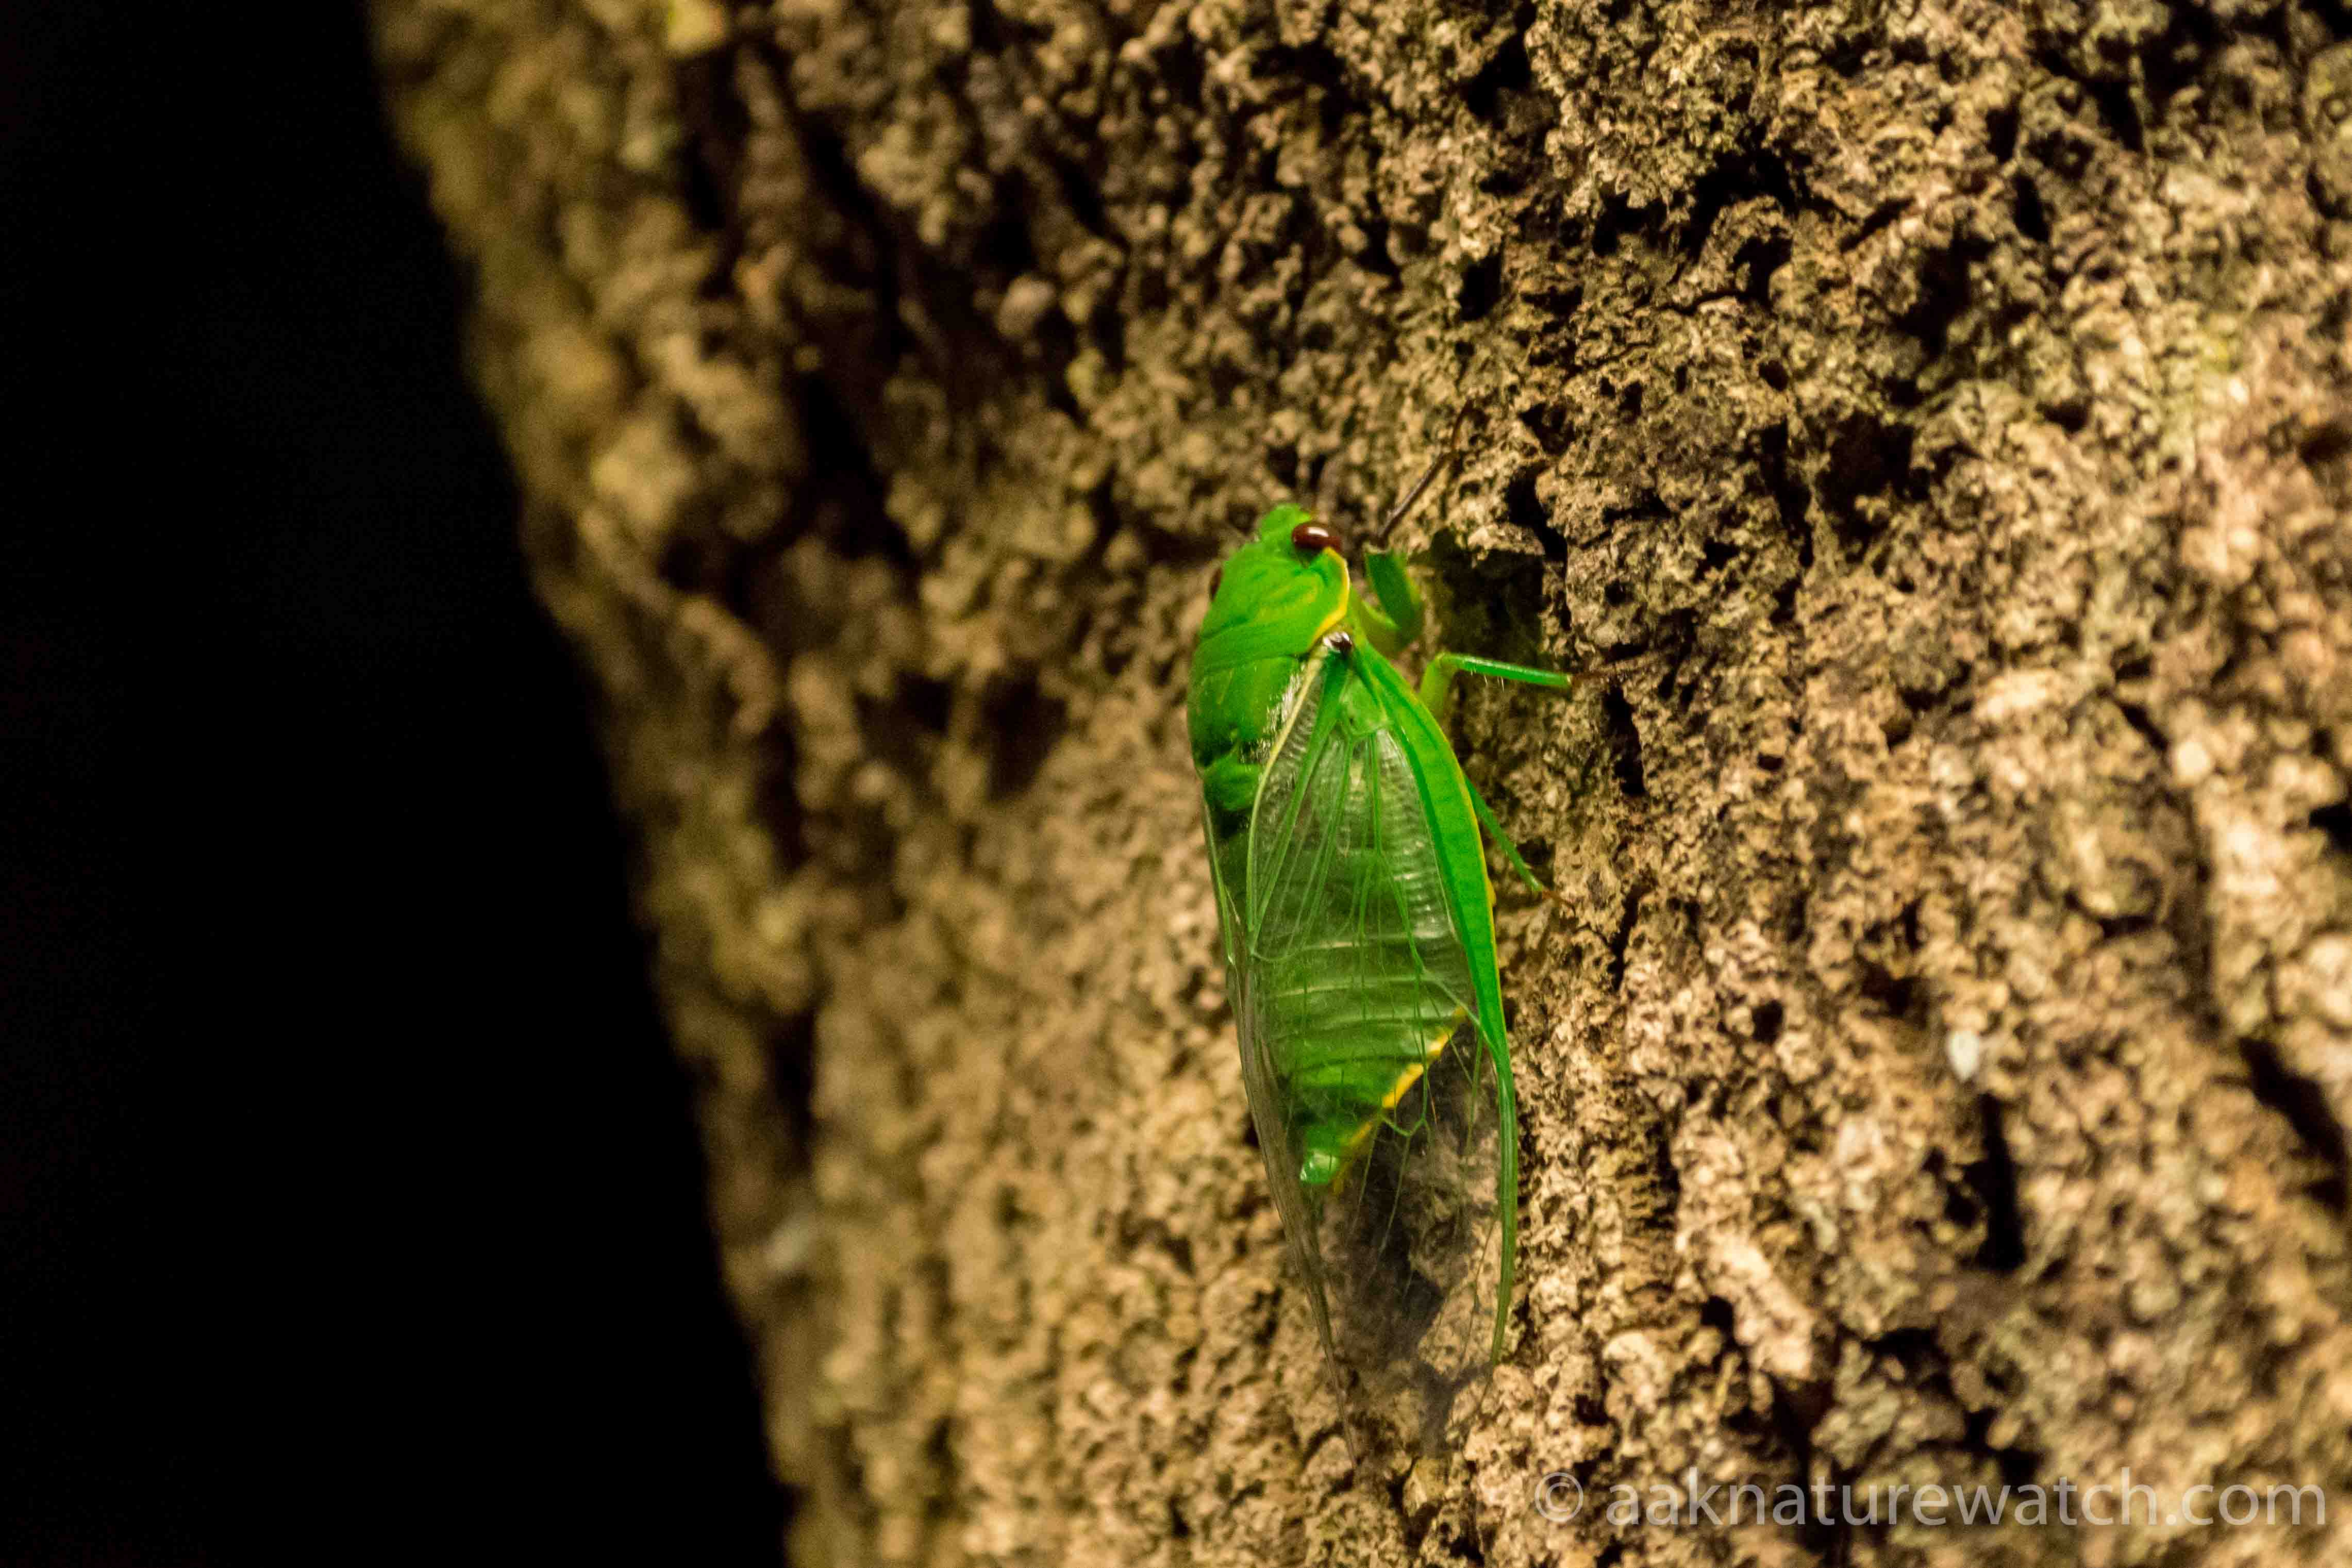 Northern-green-glocer-cicadar